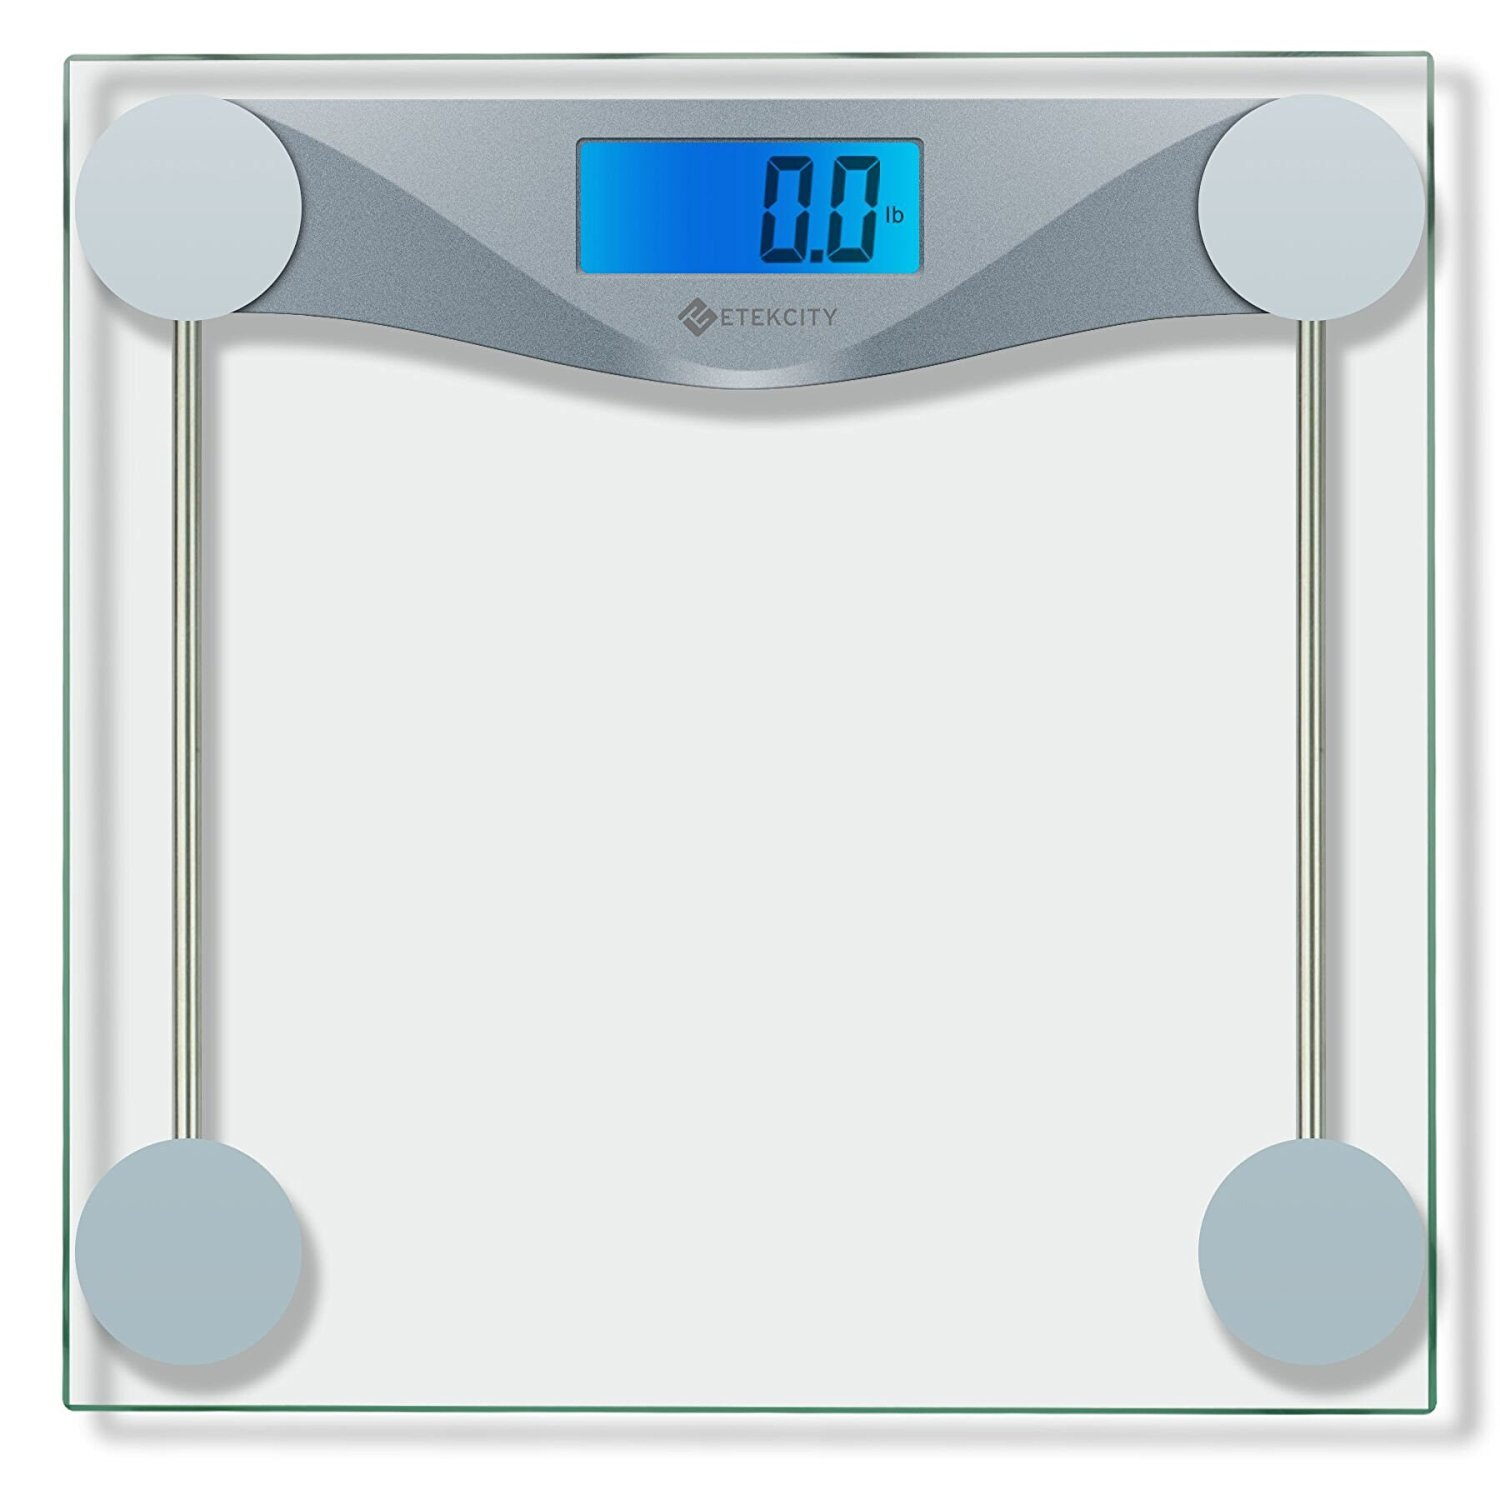 Amazon scale bathroom - Amazon Com Etekcity Digital Body Weight Bathroom Scale With Body Tape Measure Tempered Glass 400 Pounds Scales Health Personal Care